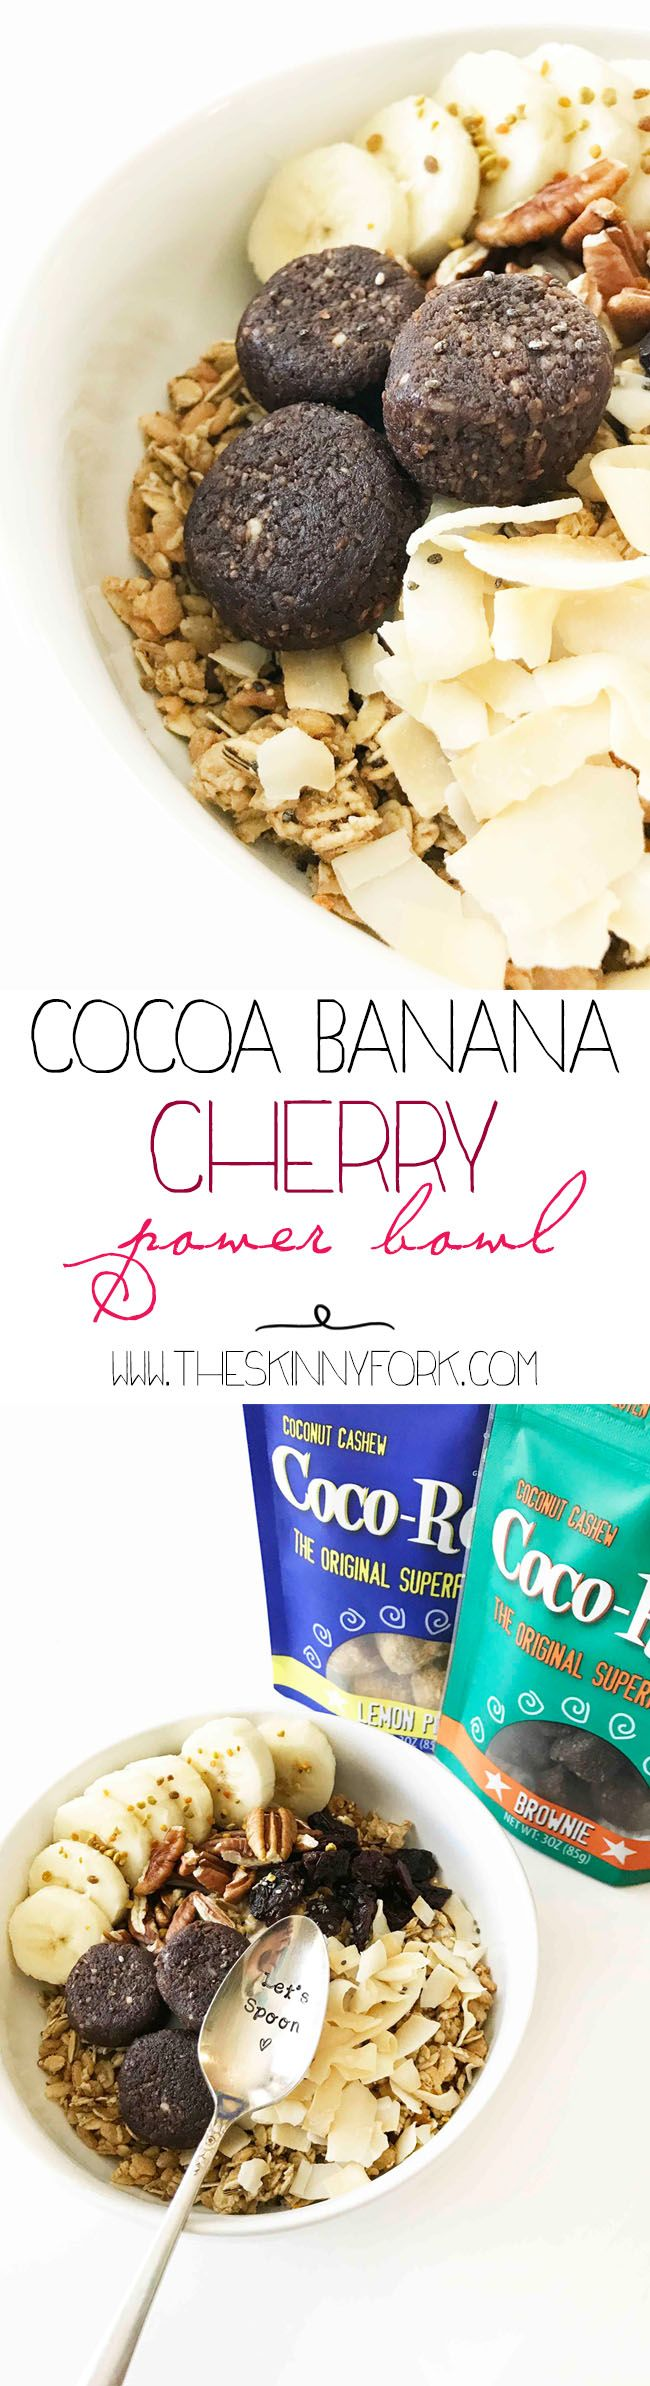 Starting the day off right with this Cocoa Banana Cherry Power Bowl! Made with Sejoyia Coco-Roons from Walmart! #CocoRoonsAtWalmart #Pmedia #Ad It's loaded up with granola, banana, dried cherries, coconut chips, nuts, and Sejoyia Brownie Coco-Roons! TheSkinnyFork.com | Skinny & Healthy Recipes